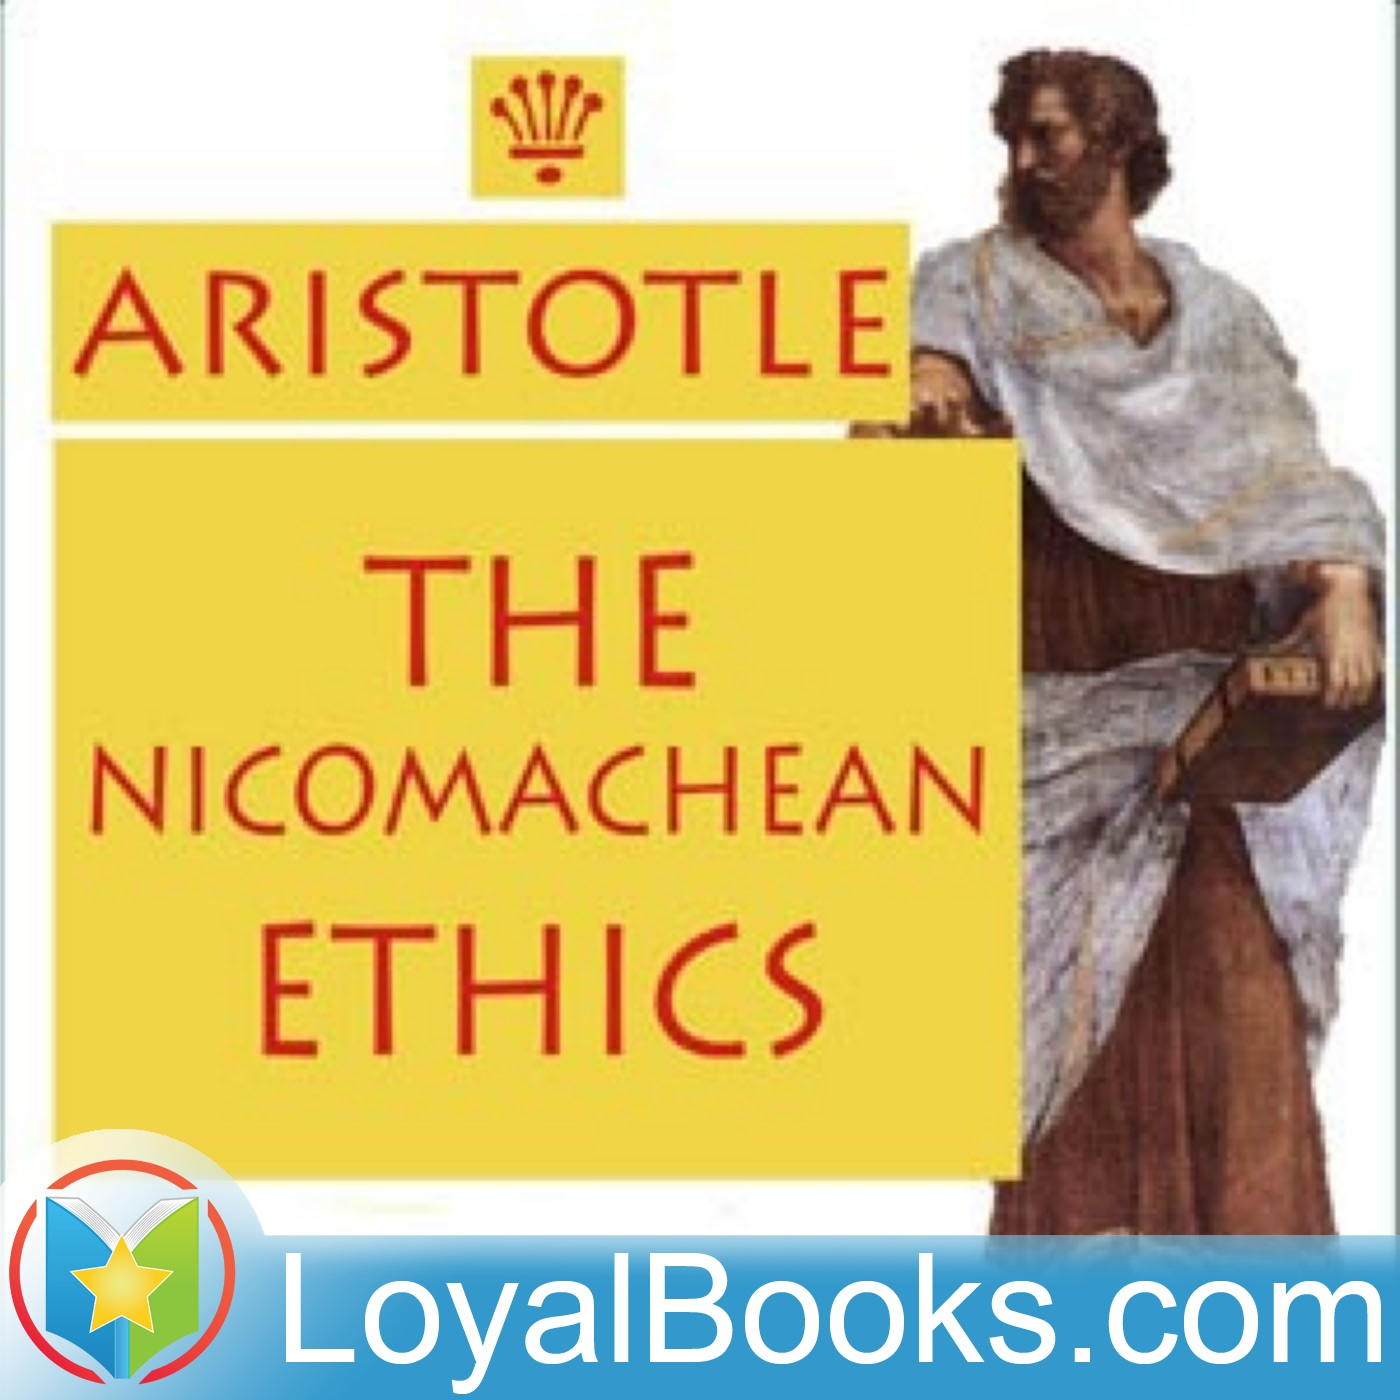 <![CDATA[The Nicomachean Ethics by Aristotle]]>